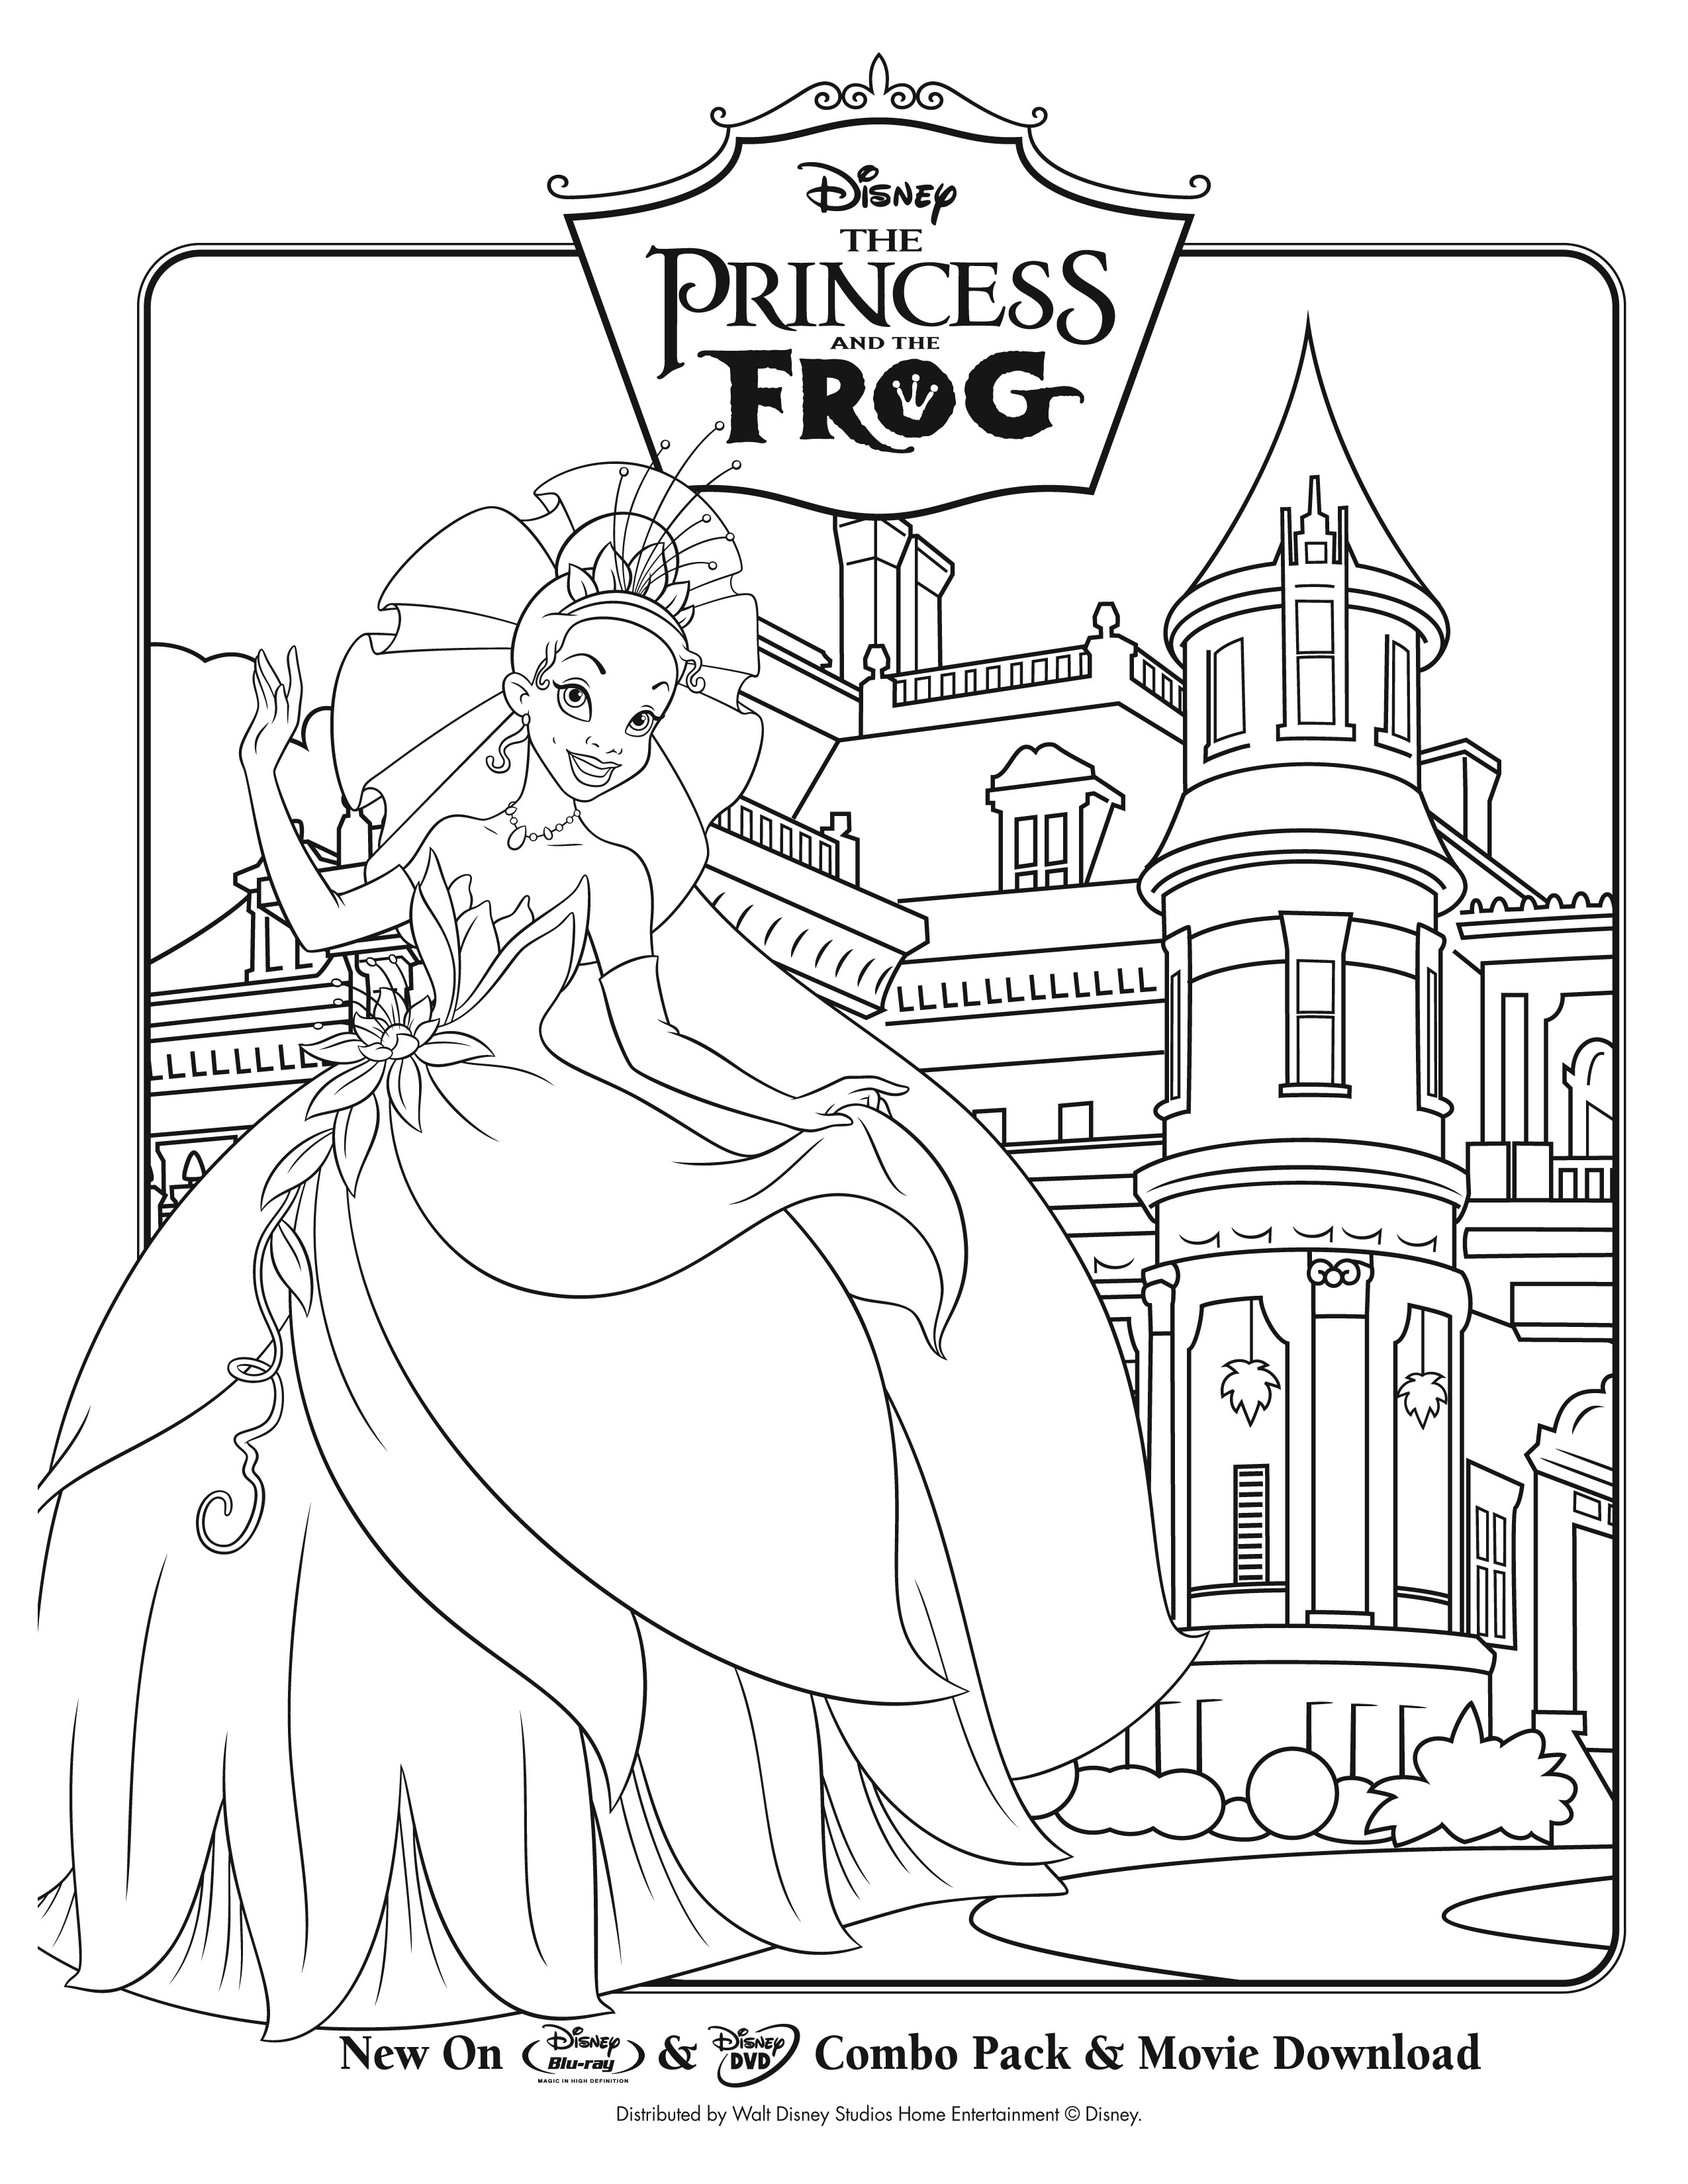 The Princess And The Frog To Print For Free The Princess And The Frog Kids Coloring Pages